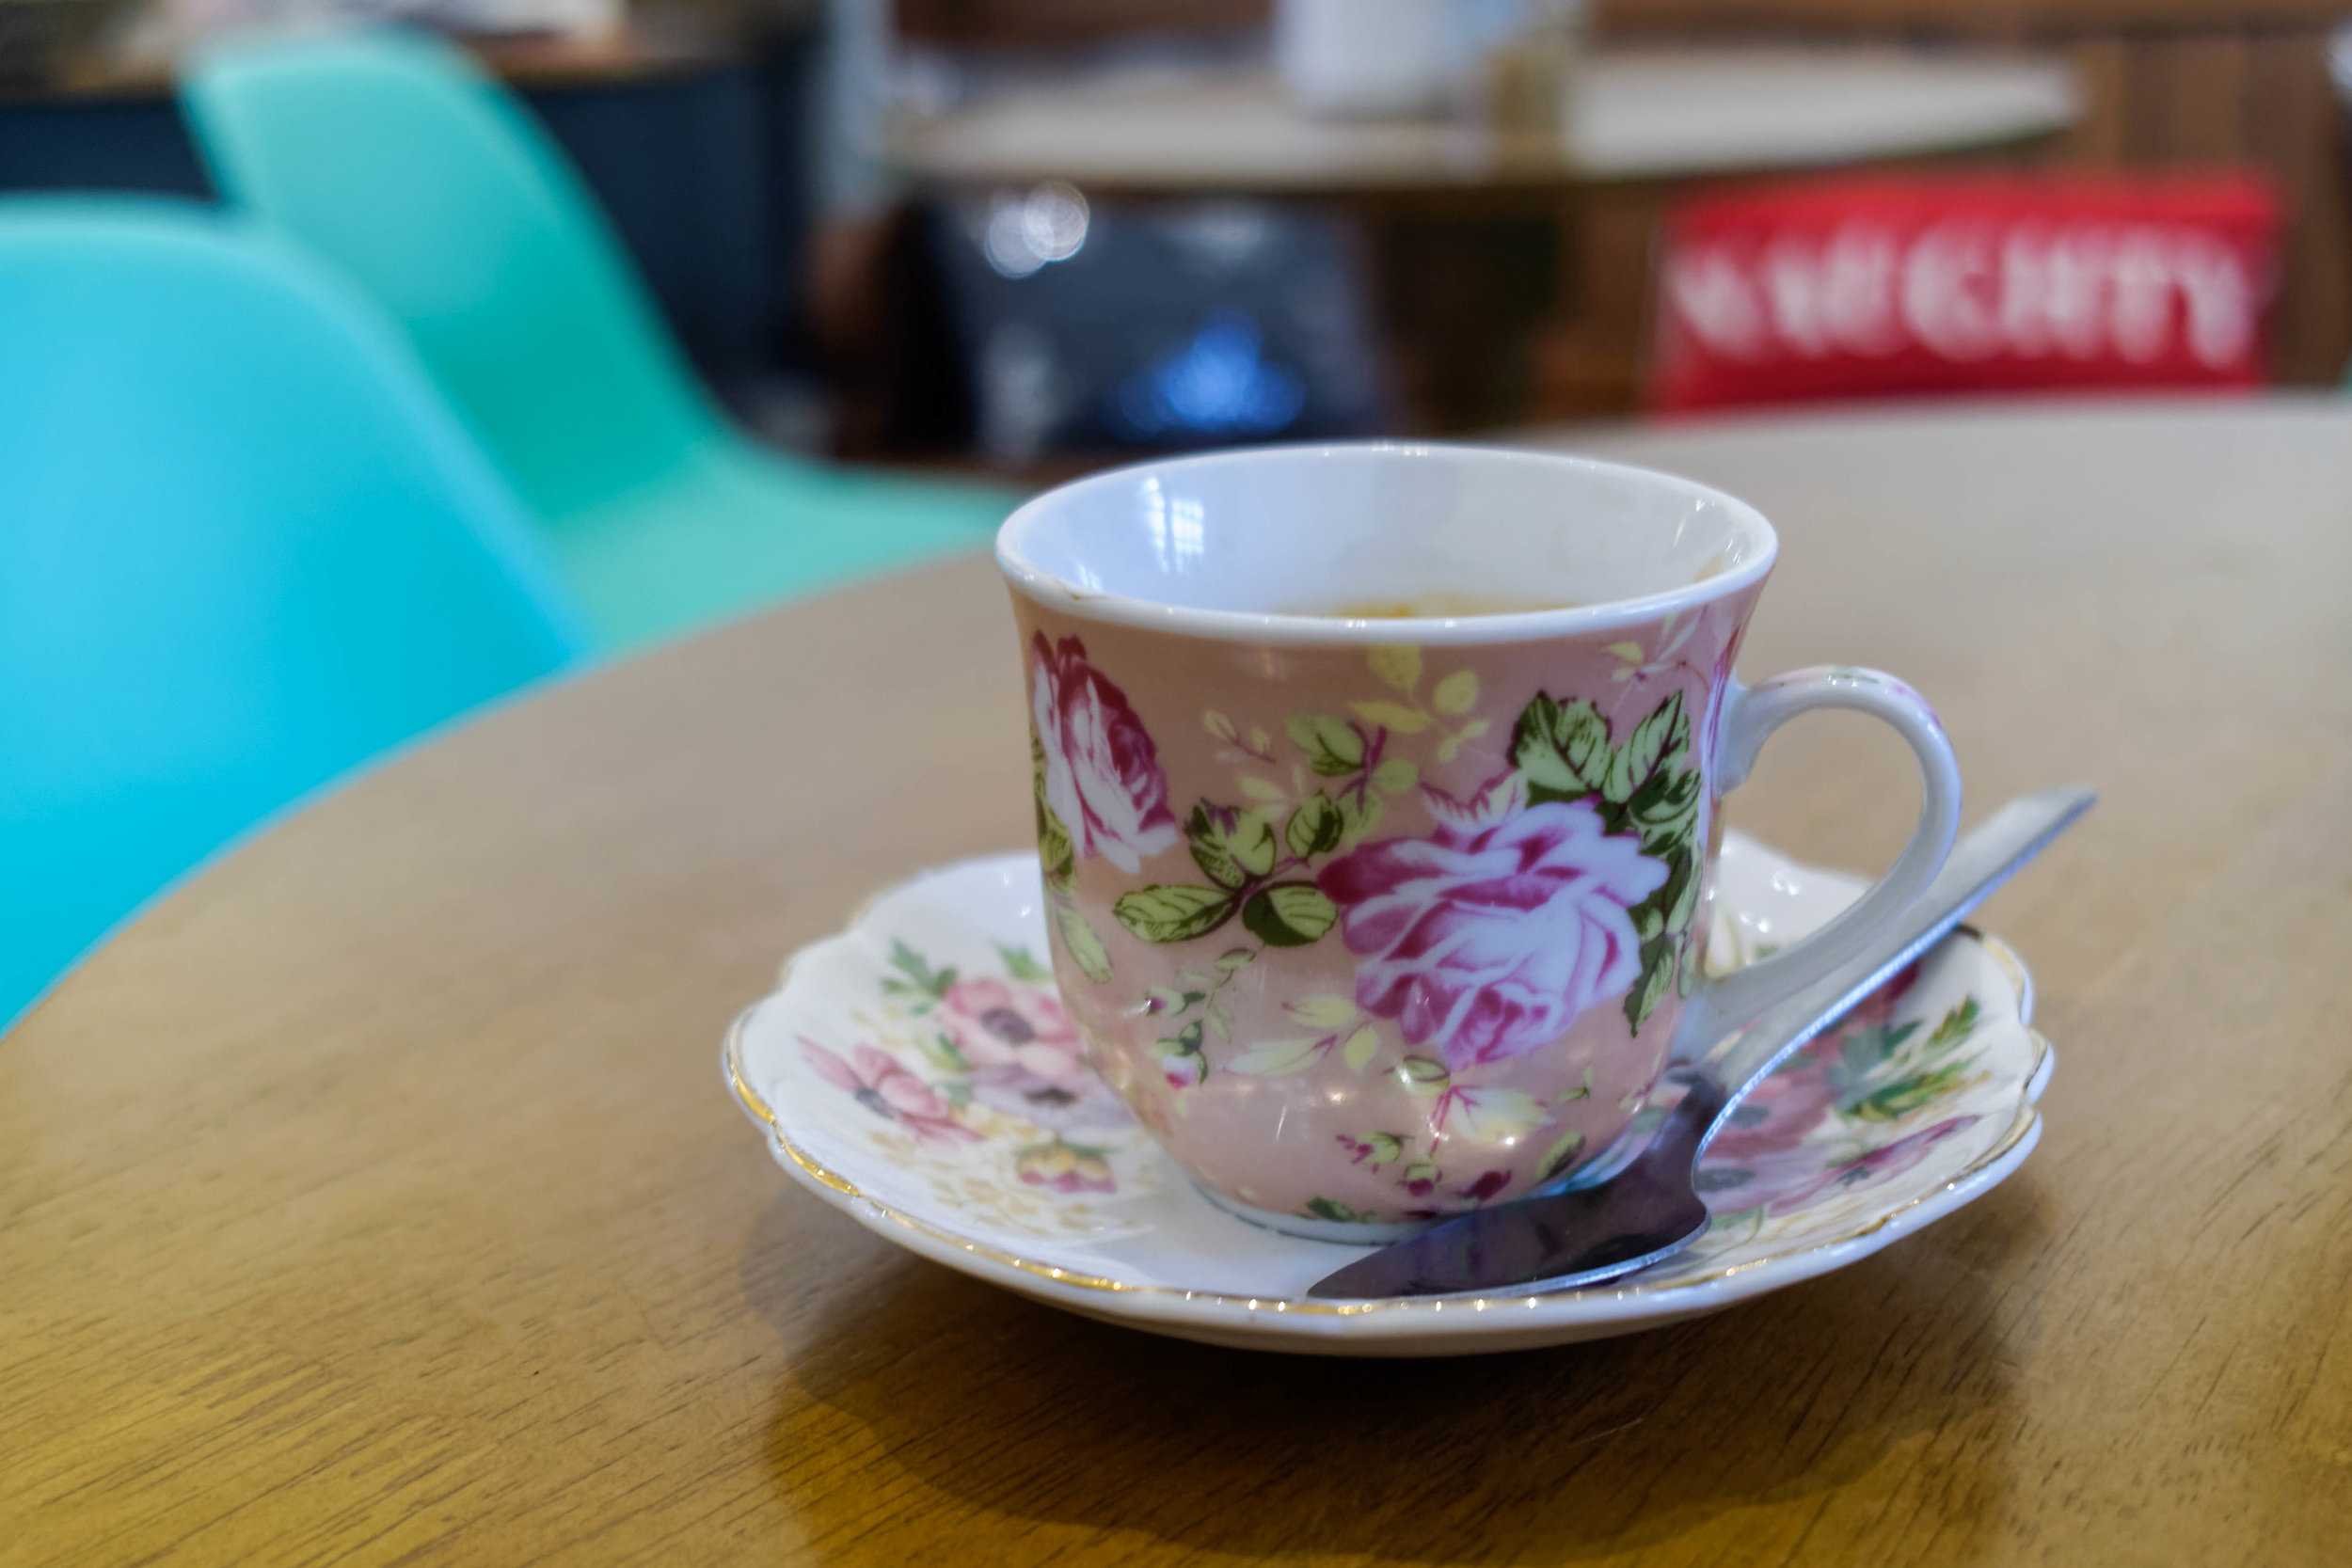 Coffees and cakes are served on gorgeous, dainty floral dishes.